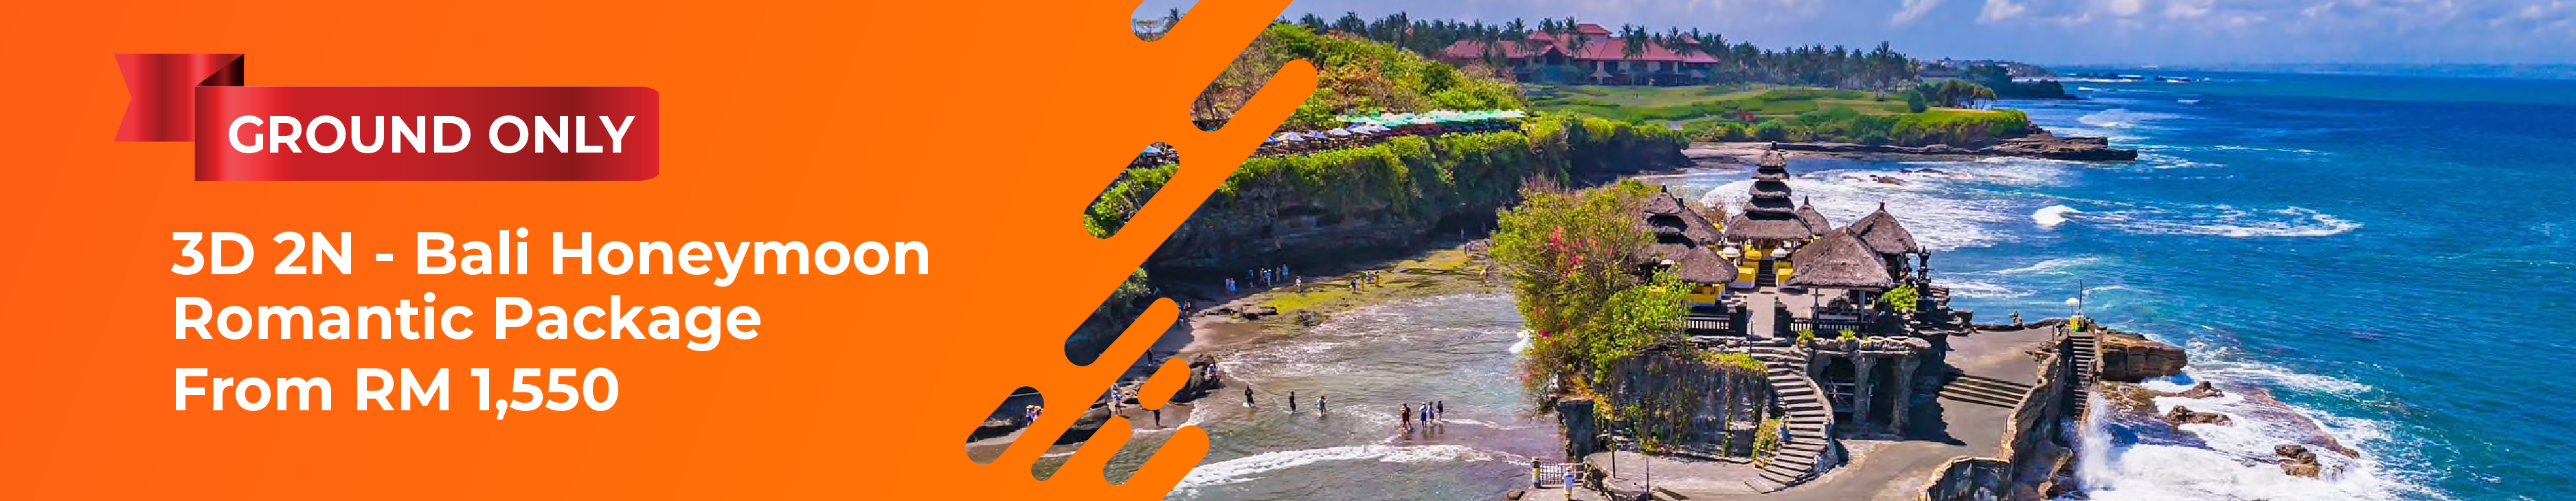 Bali Honeymoon Romantic Package 3d2n Deliver Travel Tours Sdn Bhd